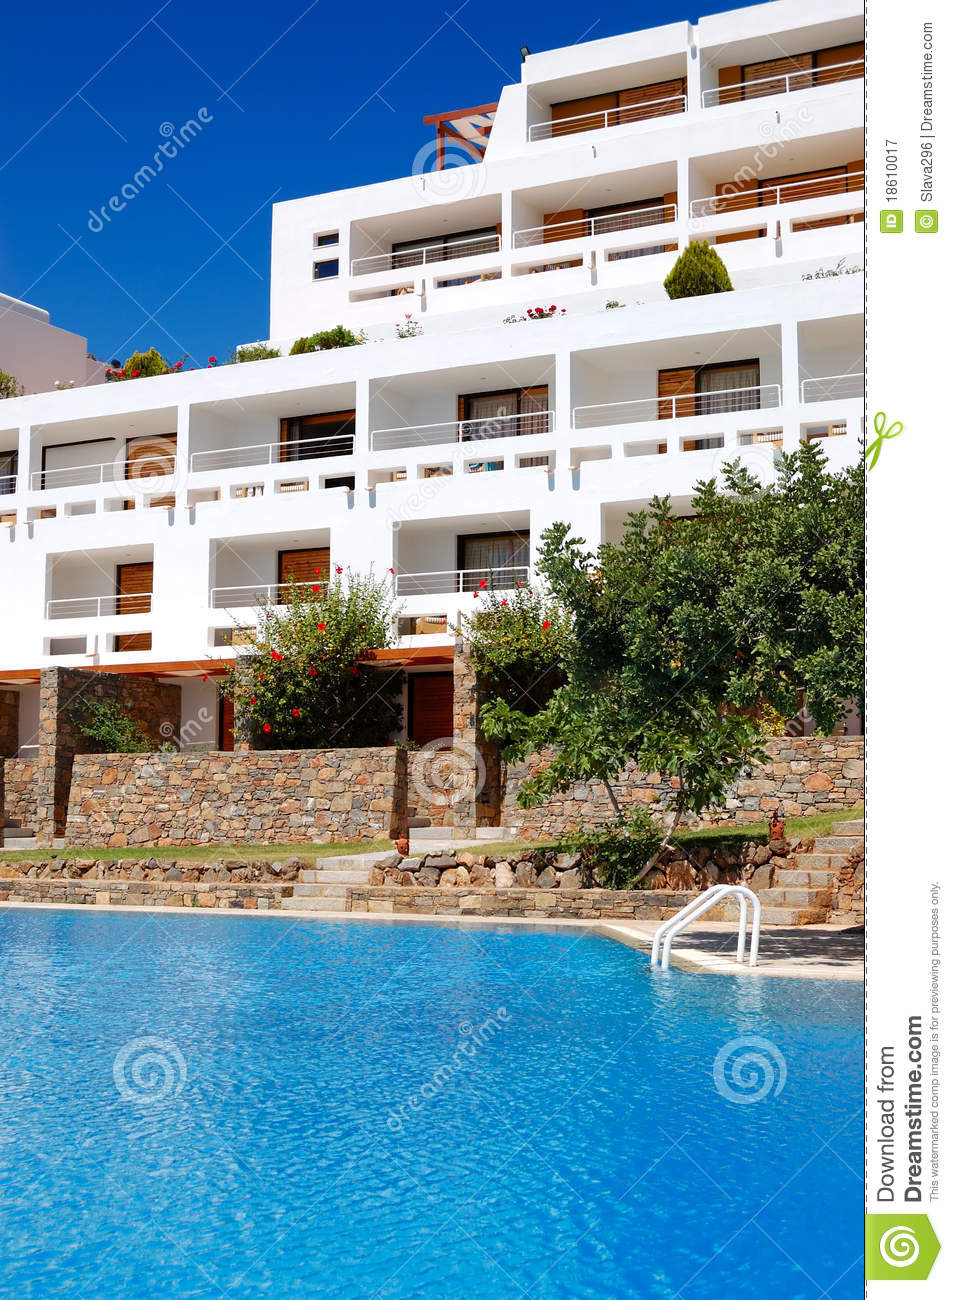 Swimming Pool At Luxury Hotel Royalty Free Stock Photography Image 18610017